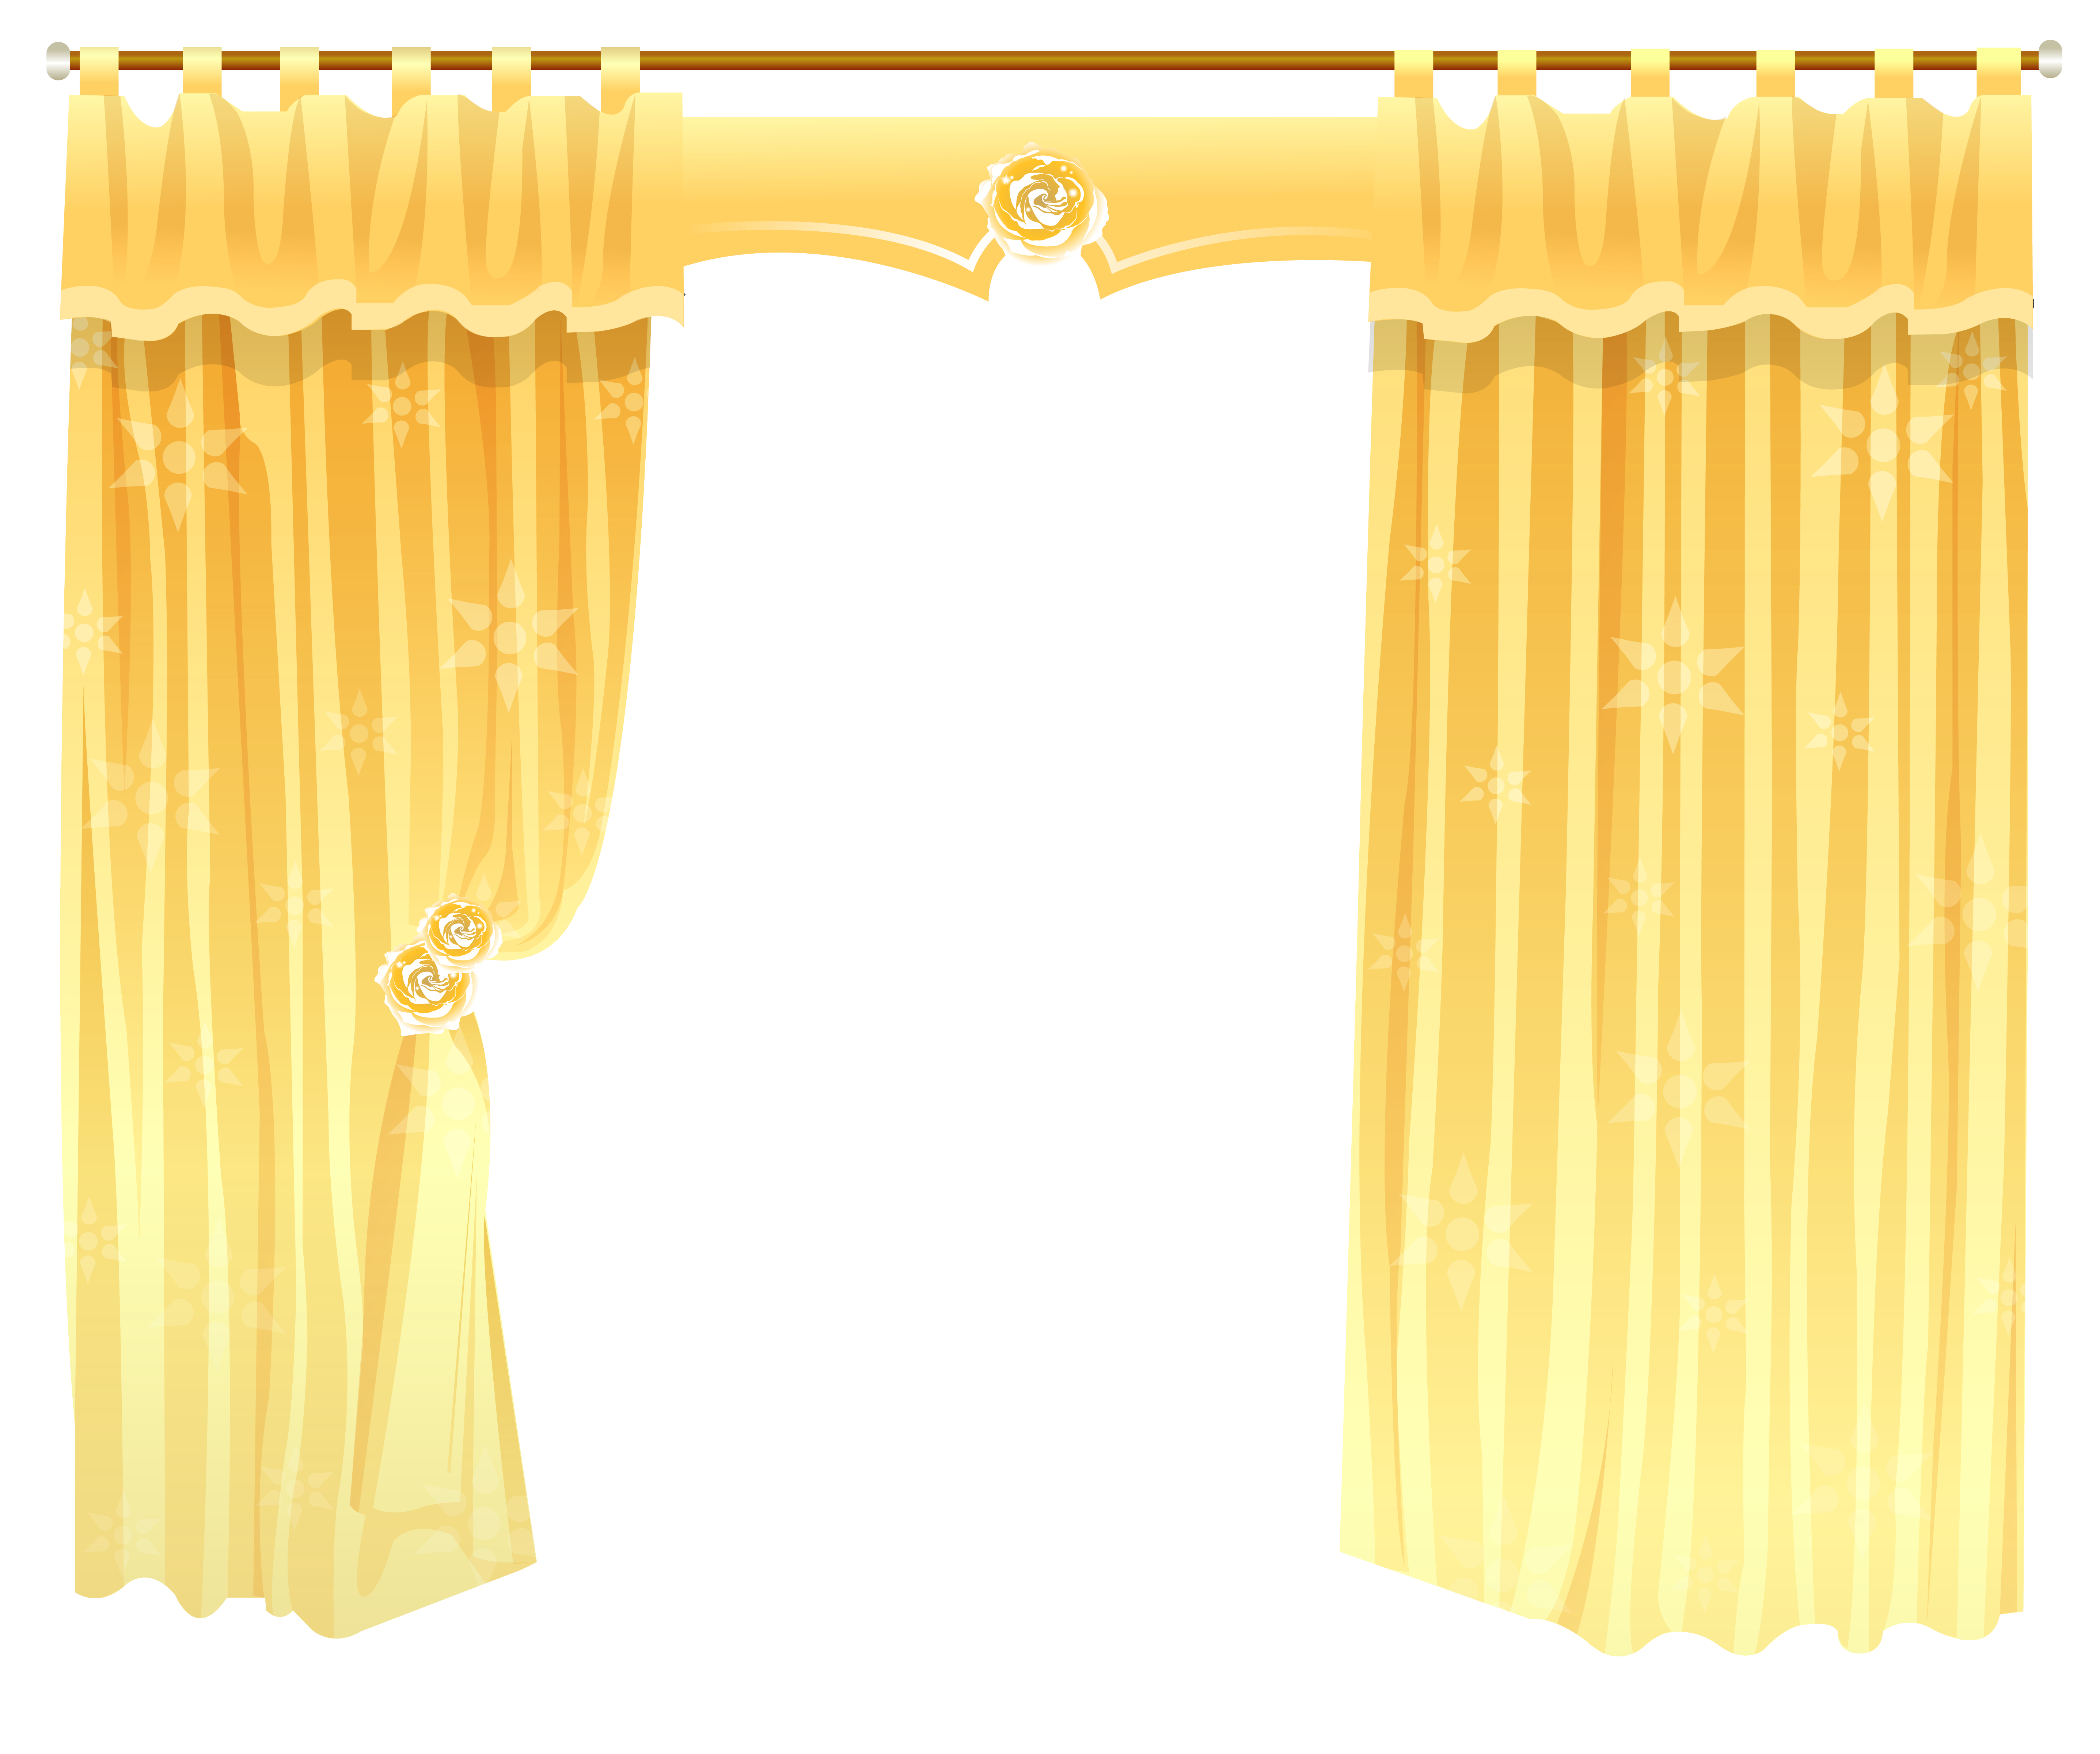 Curtains clipart yellow curtain. Window treatment rod shower